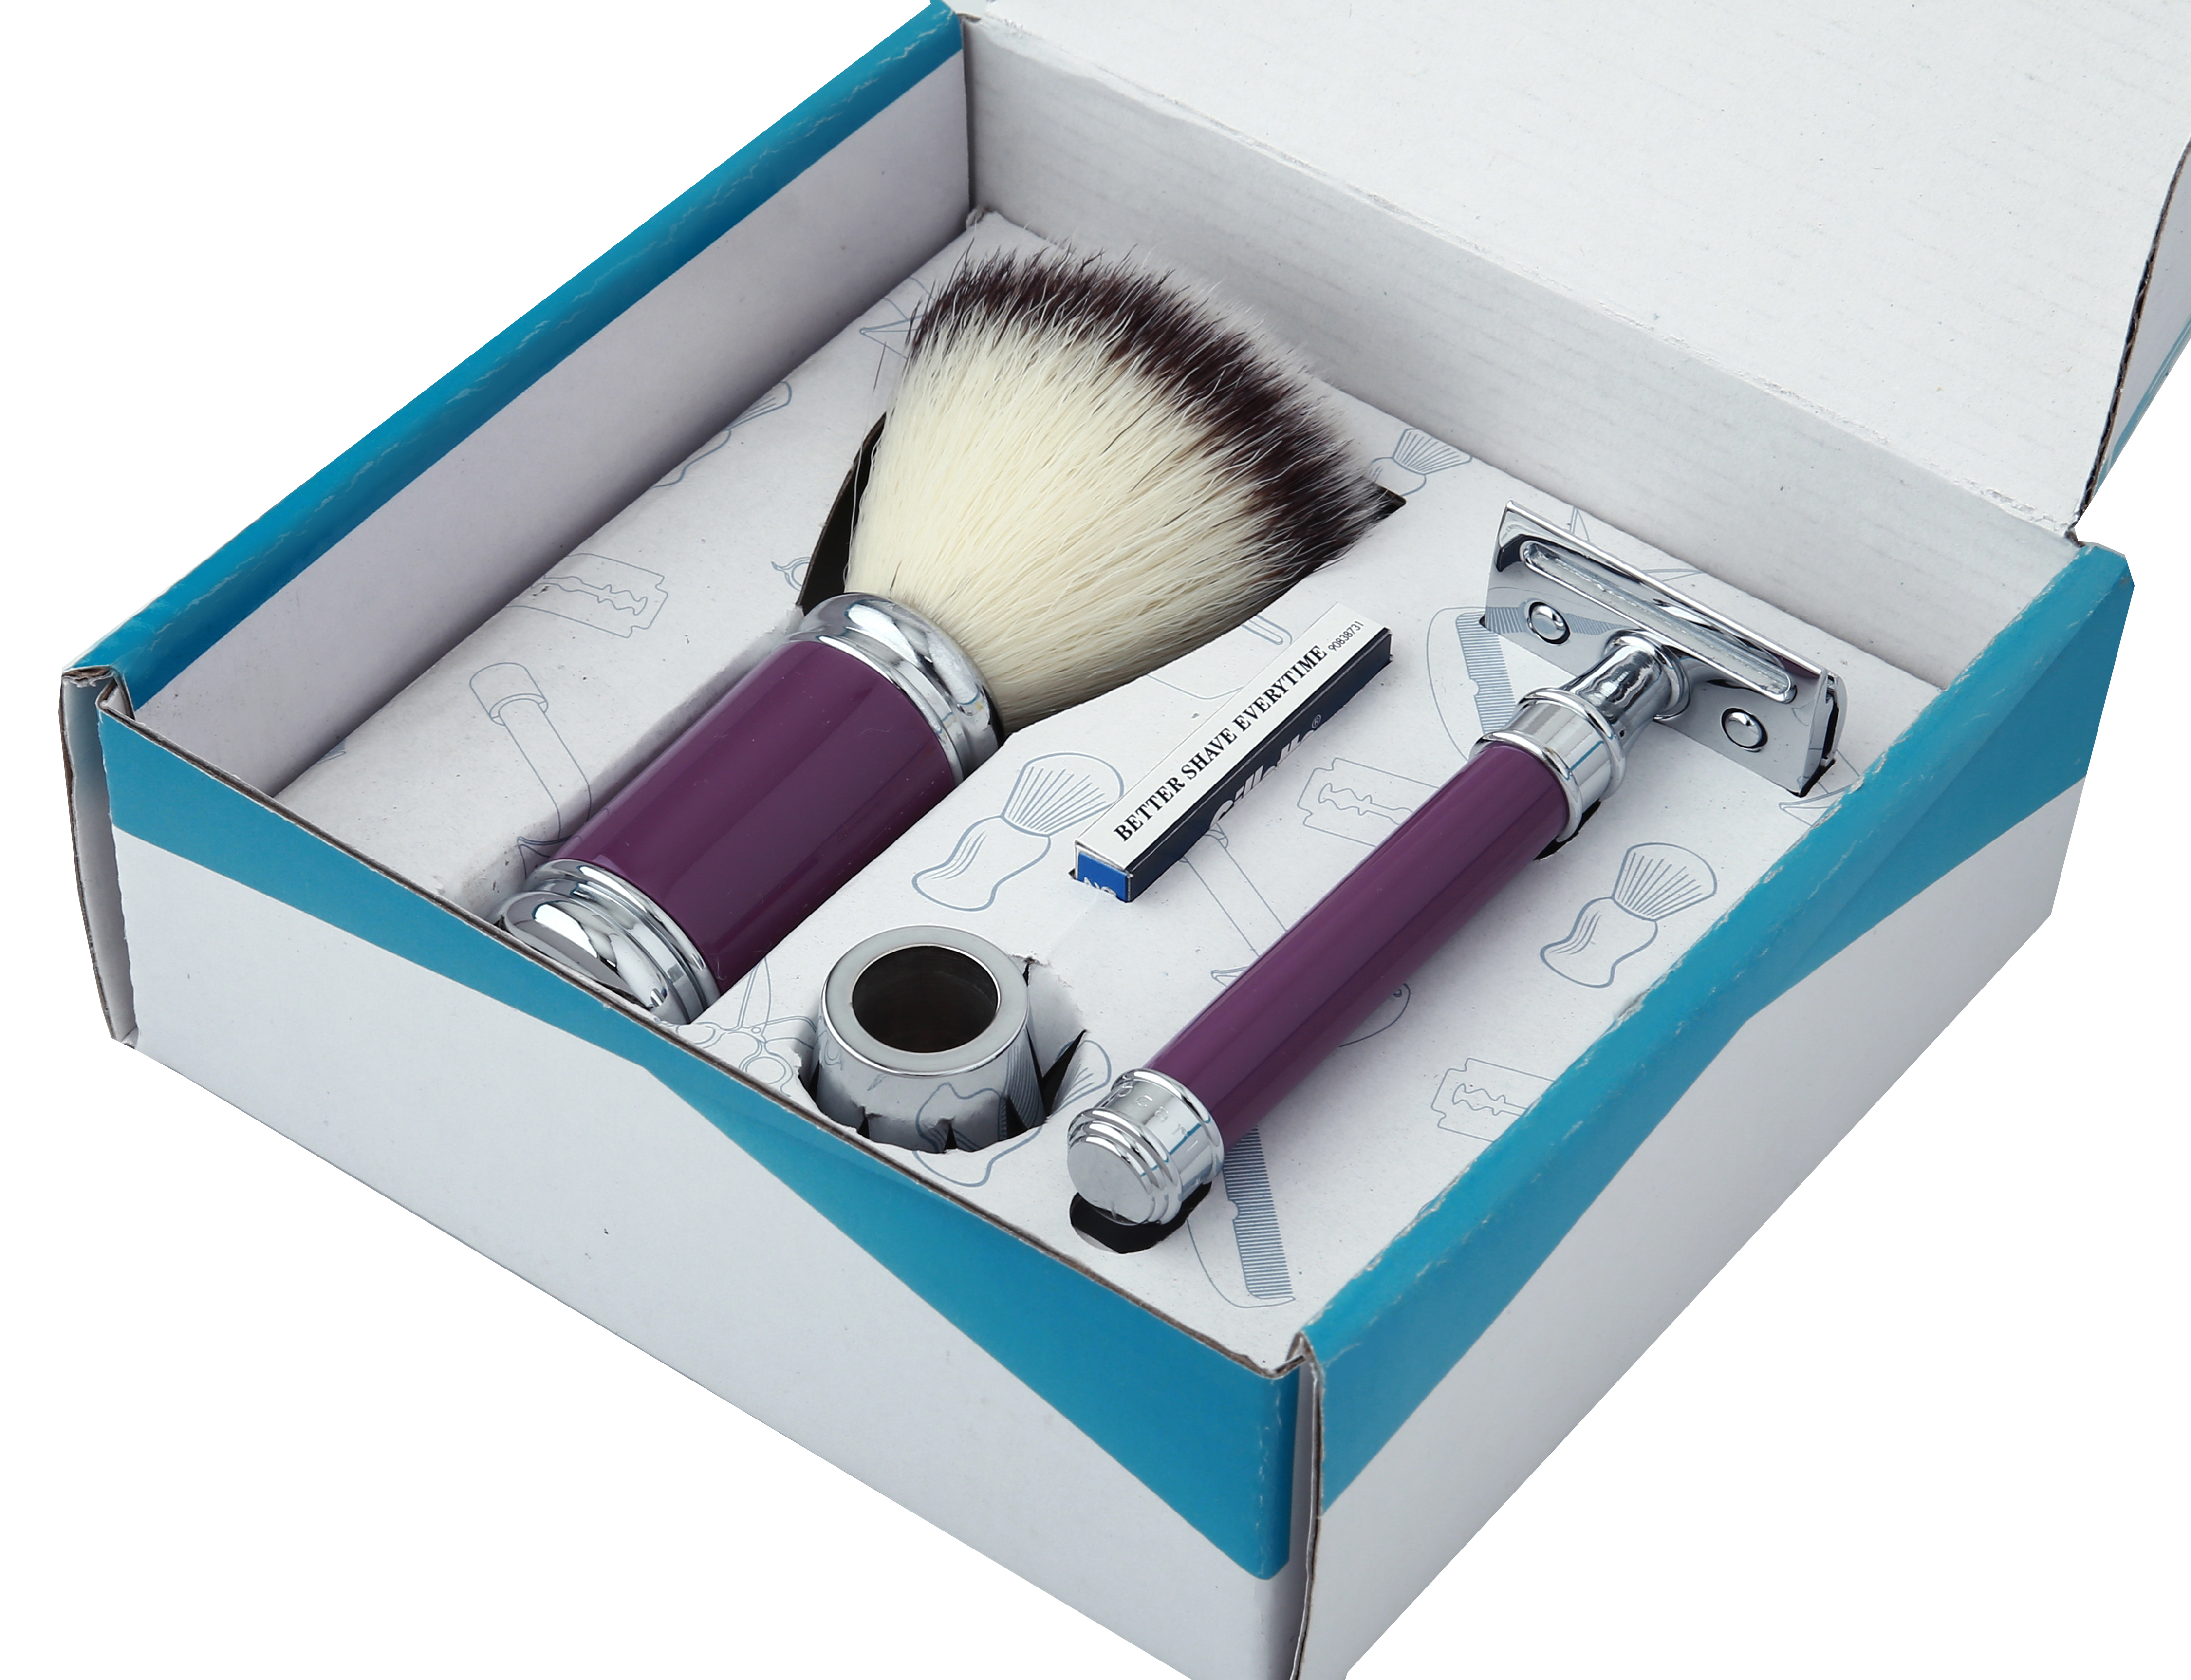 Pearl Shaving Razor & Brush Sets SRS (SRS-A141PURPAL)